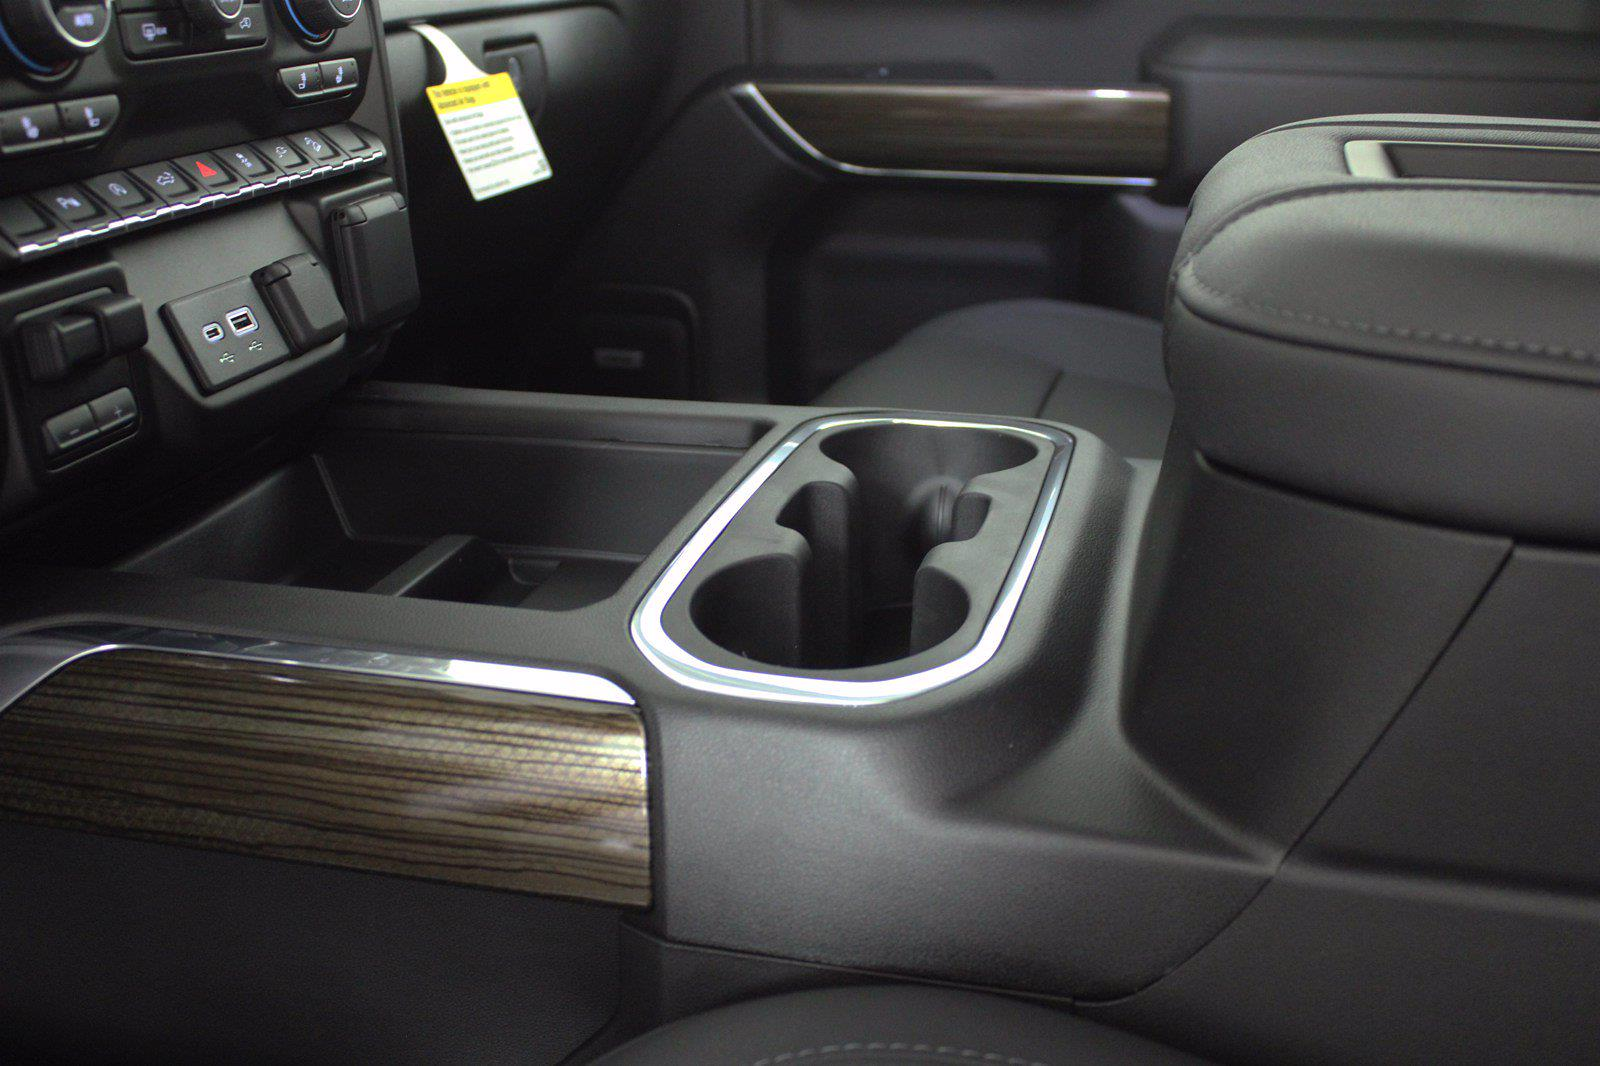 2021 Chevrolet Silverado 1500 Crew Cab 4x4, Pickup #D110467 - photo 11